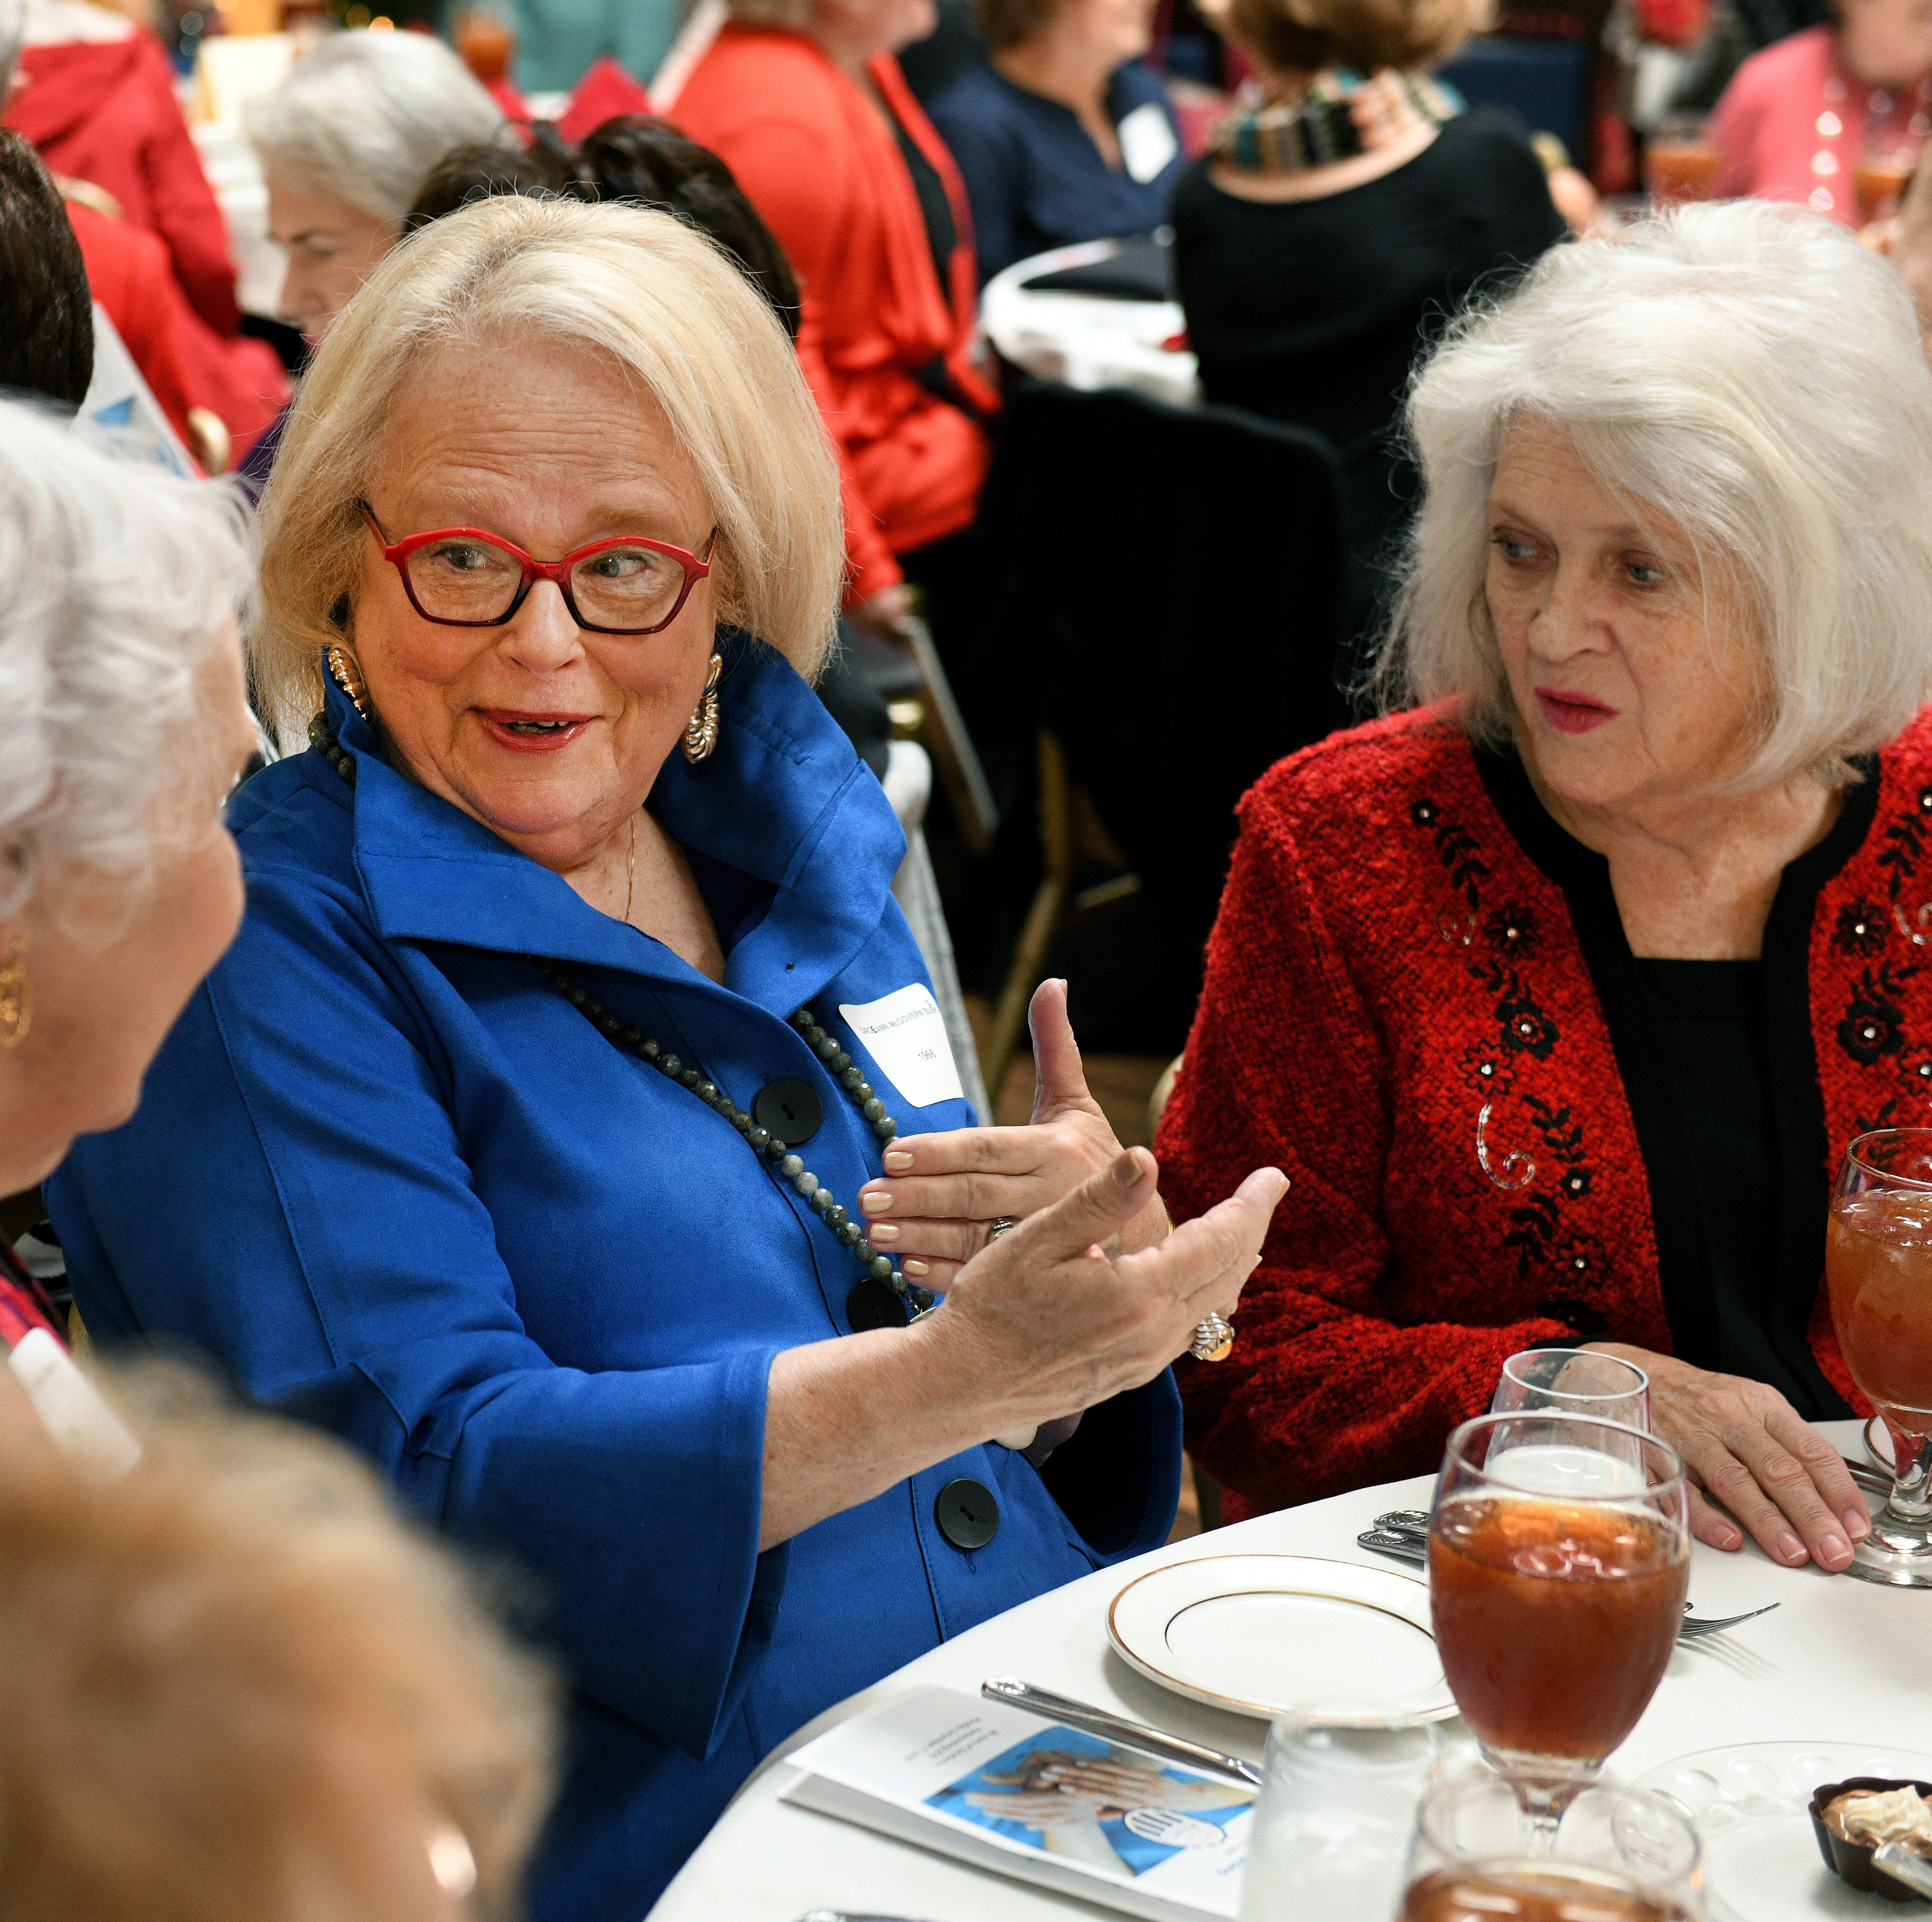 Nurses get 'rowdy': St. Mary's Nursing School alumni reconnect, reminisce at reunion